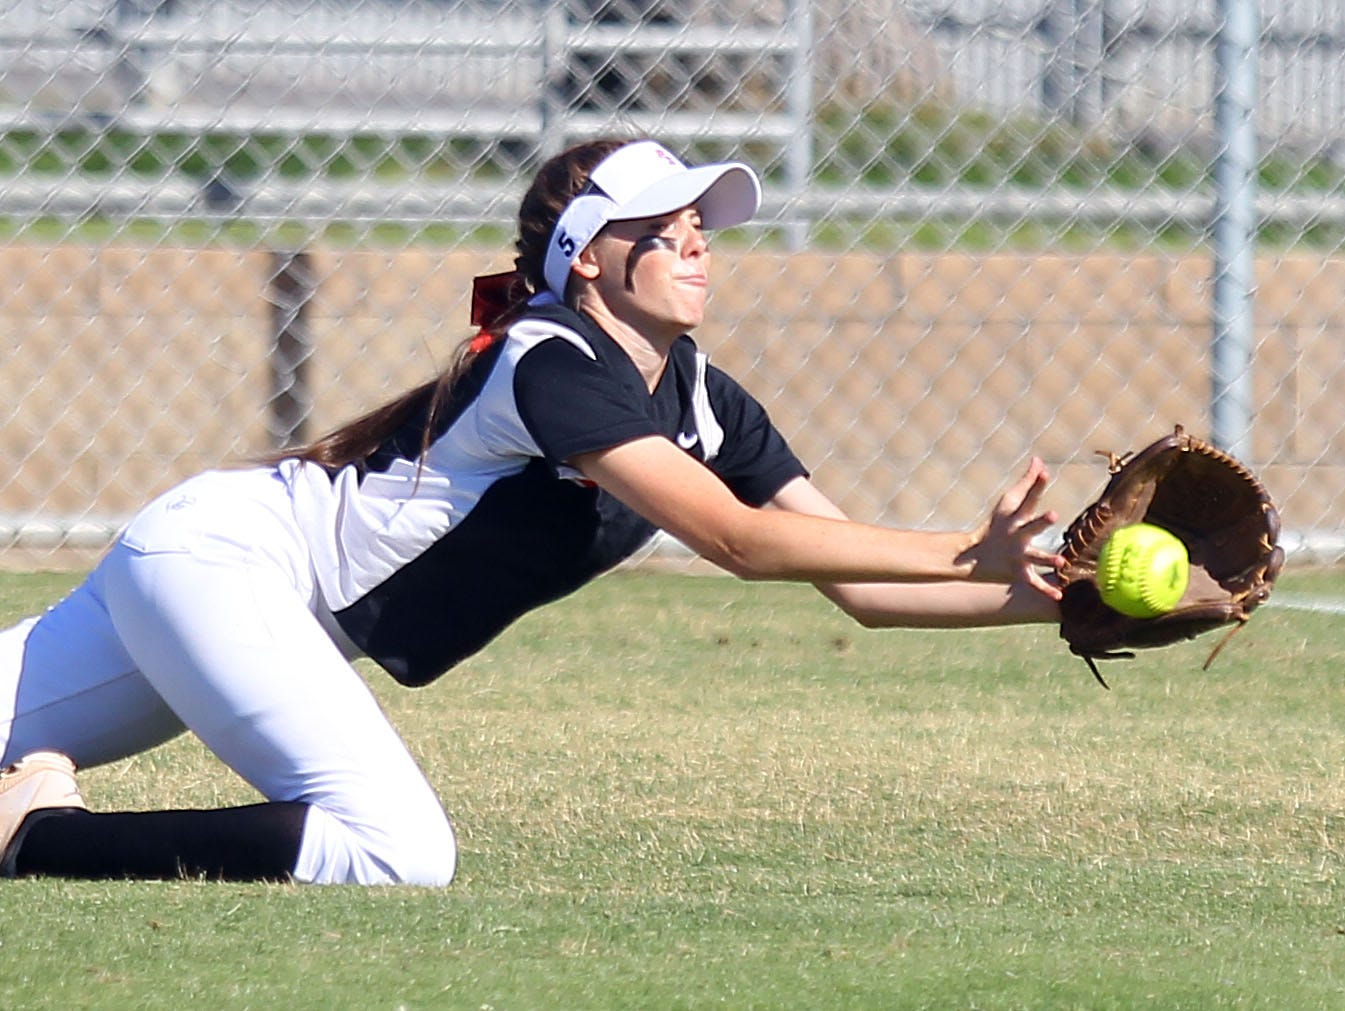 Palm Springs' Kalynn Bedwell makes a catch in right field against Palm Desert on Friday, March 25, 2016 in Palm Desert.